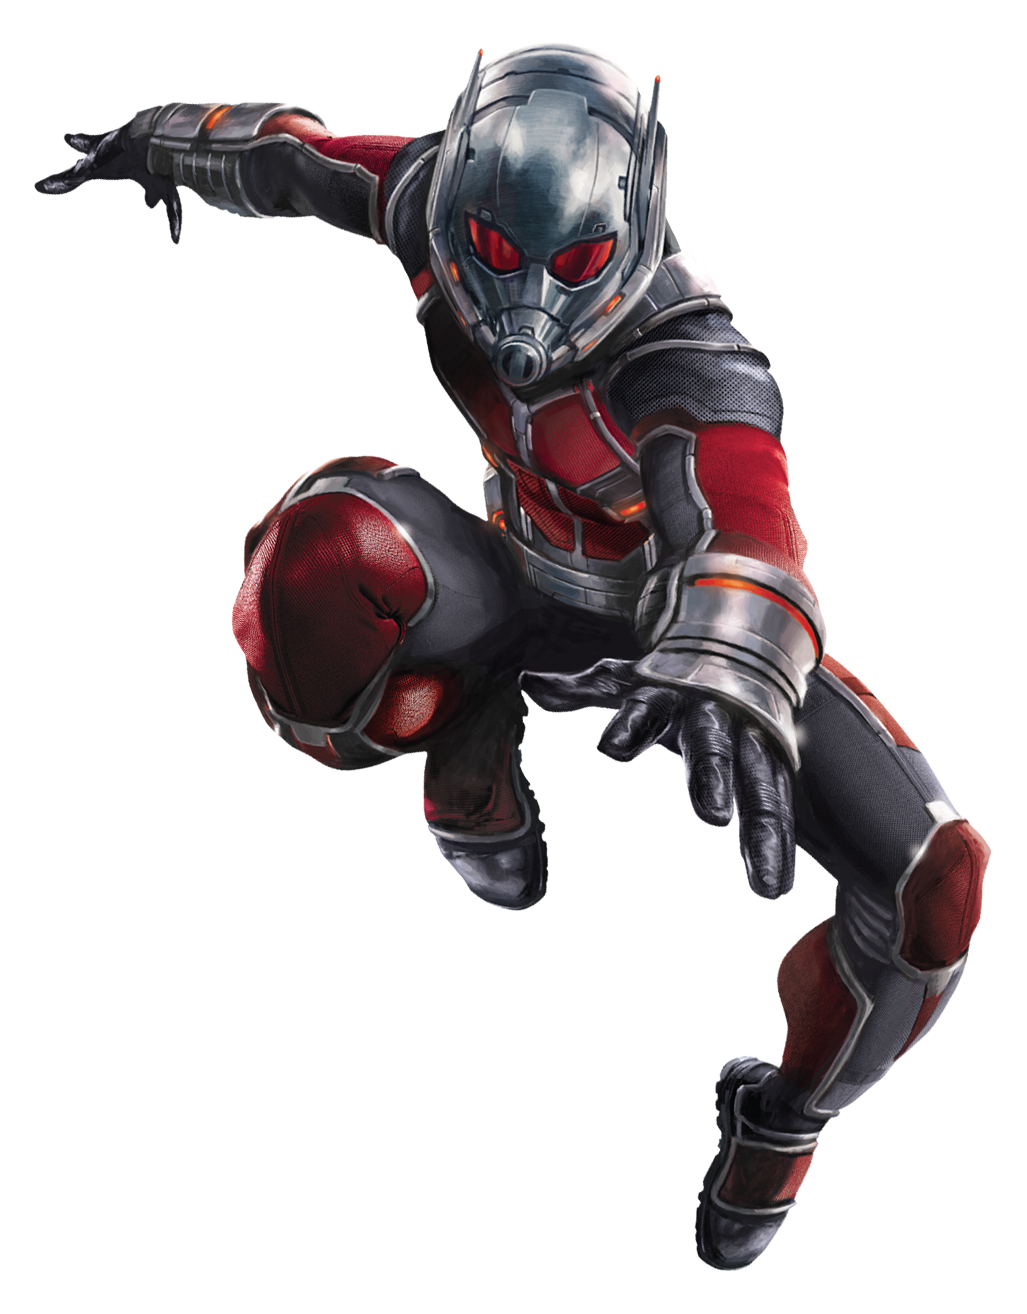 Ant man png. Image civil war char